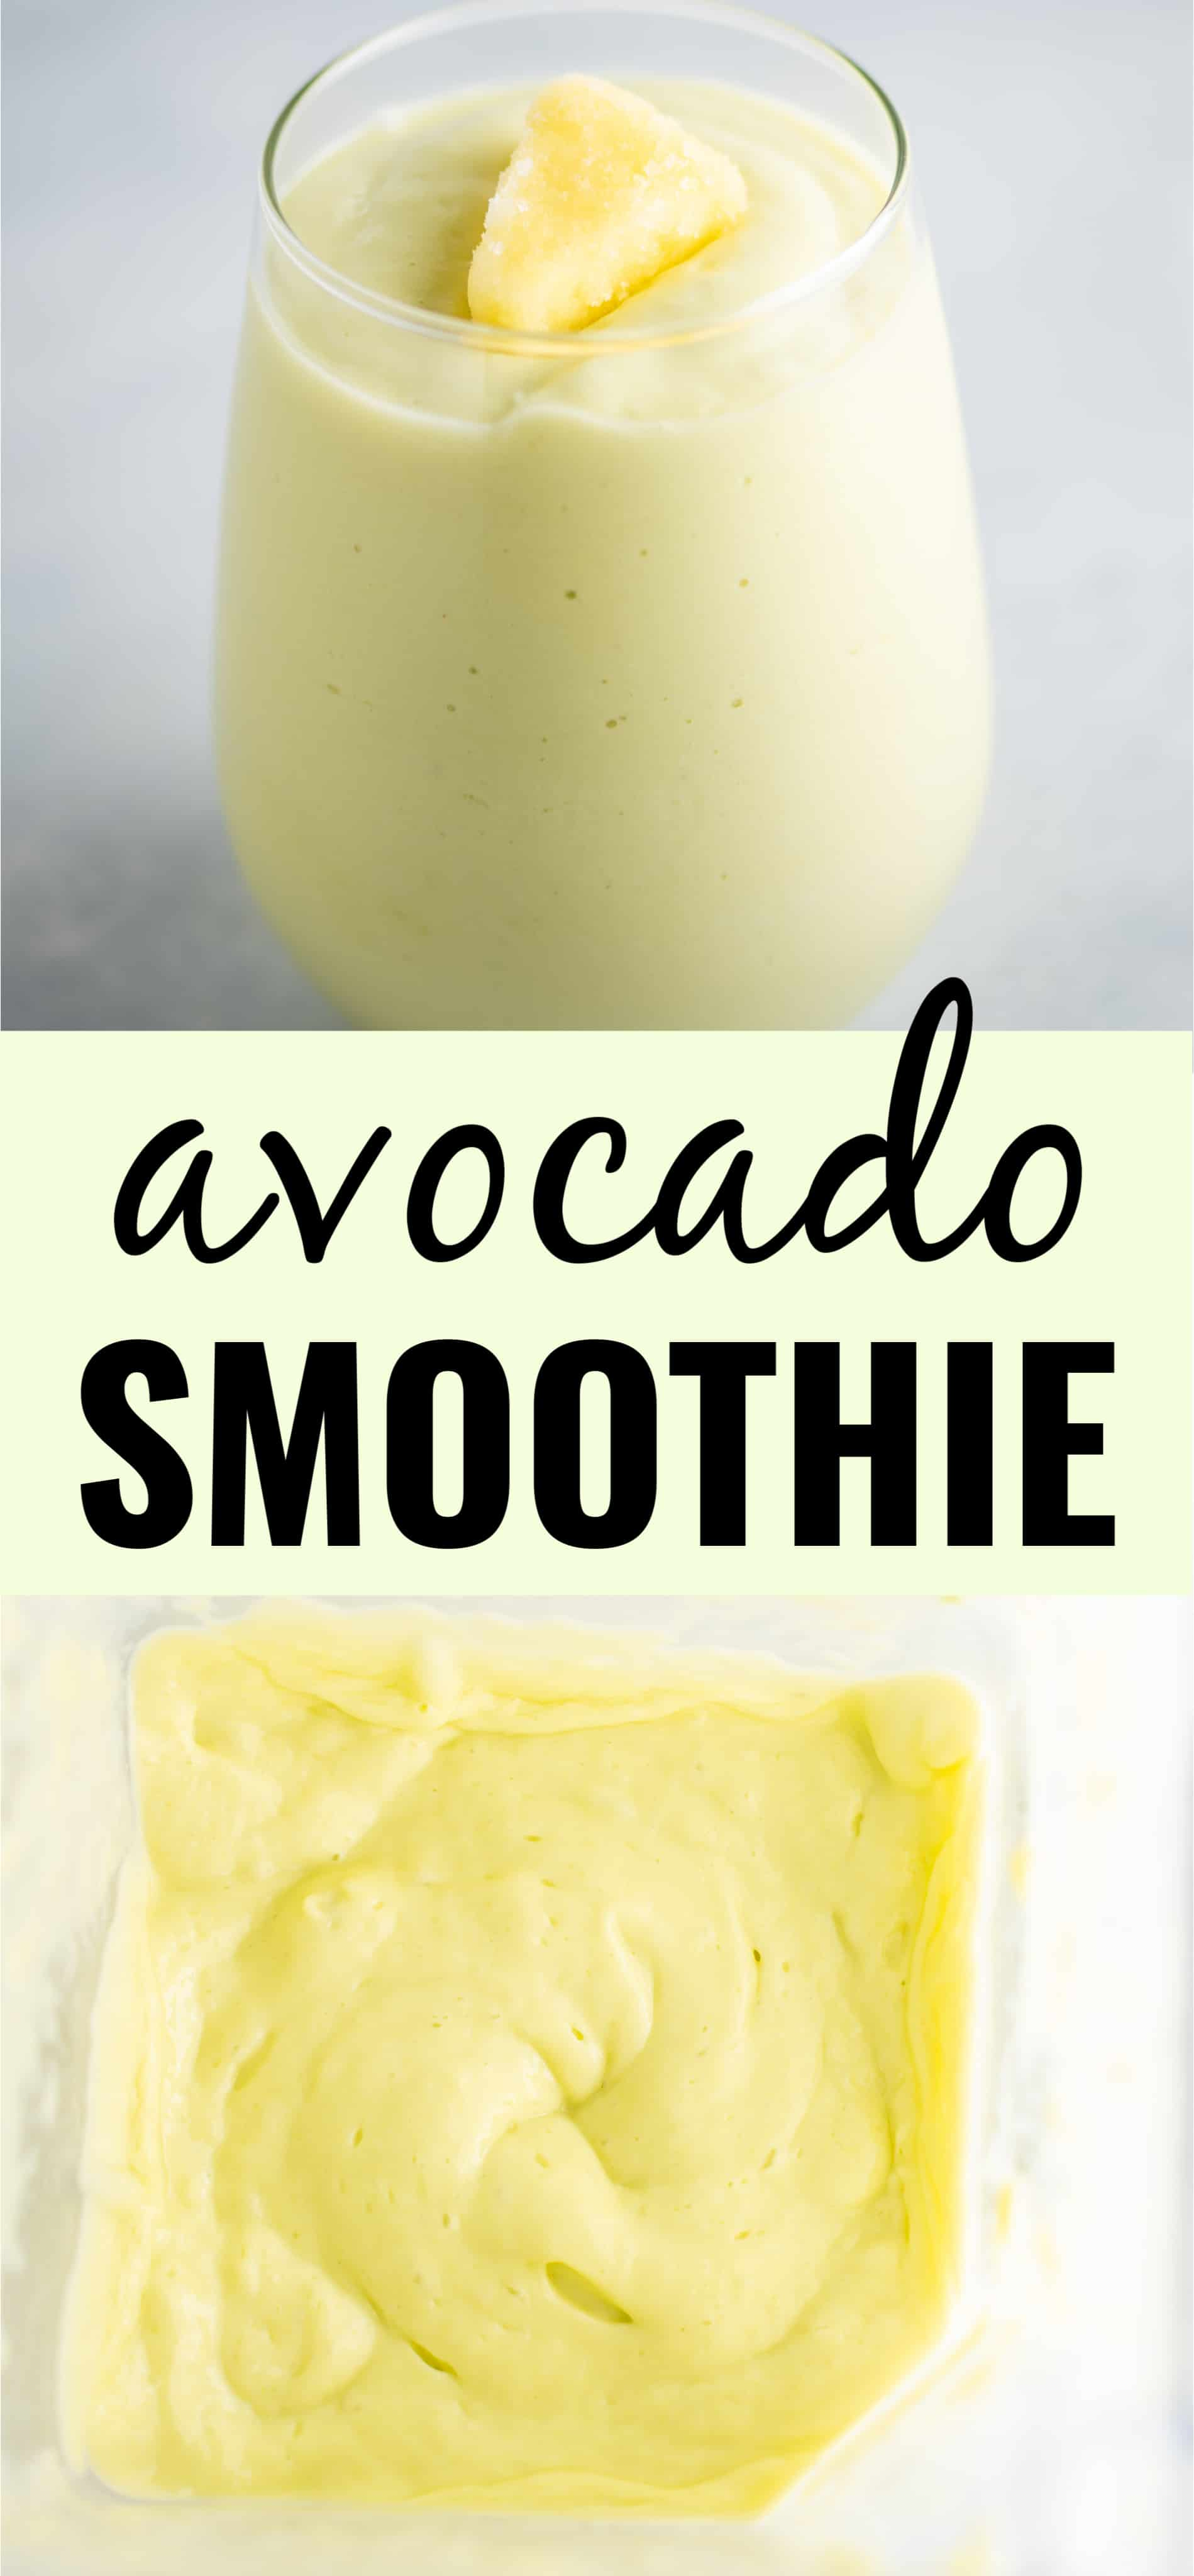 """image of the smoothie with the text """"avocado smoothie"""""""